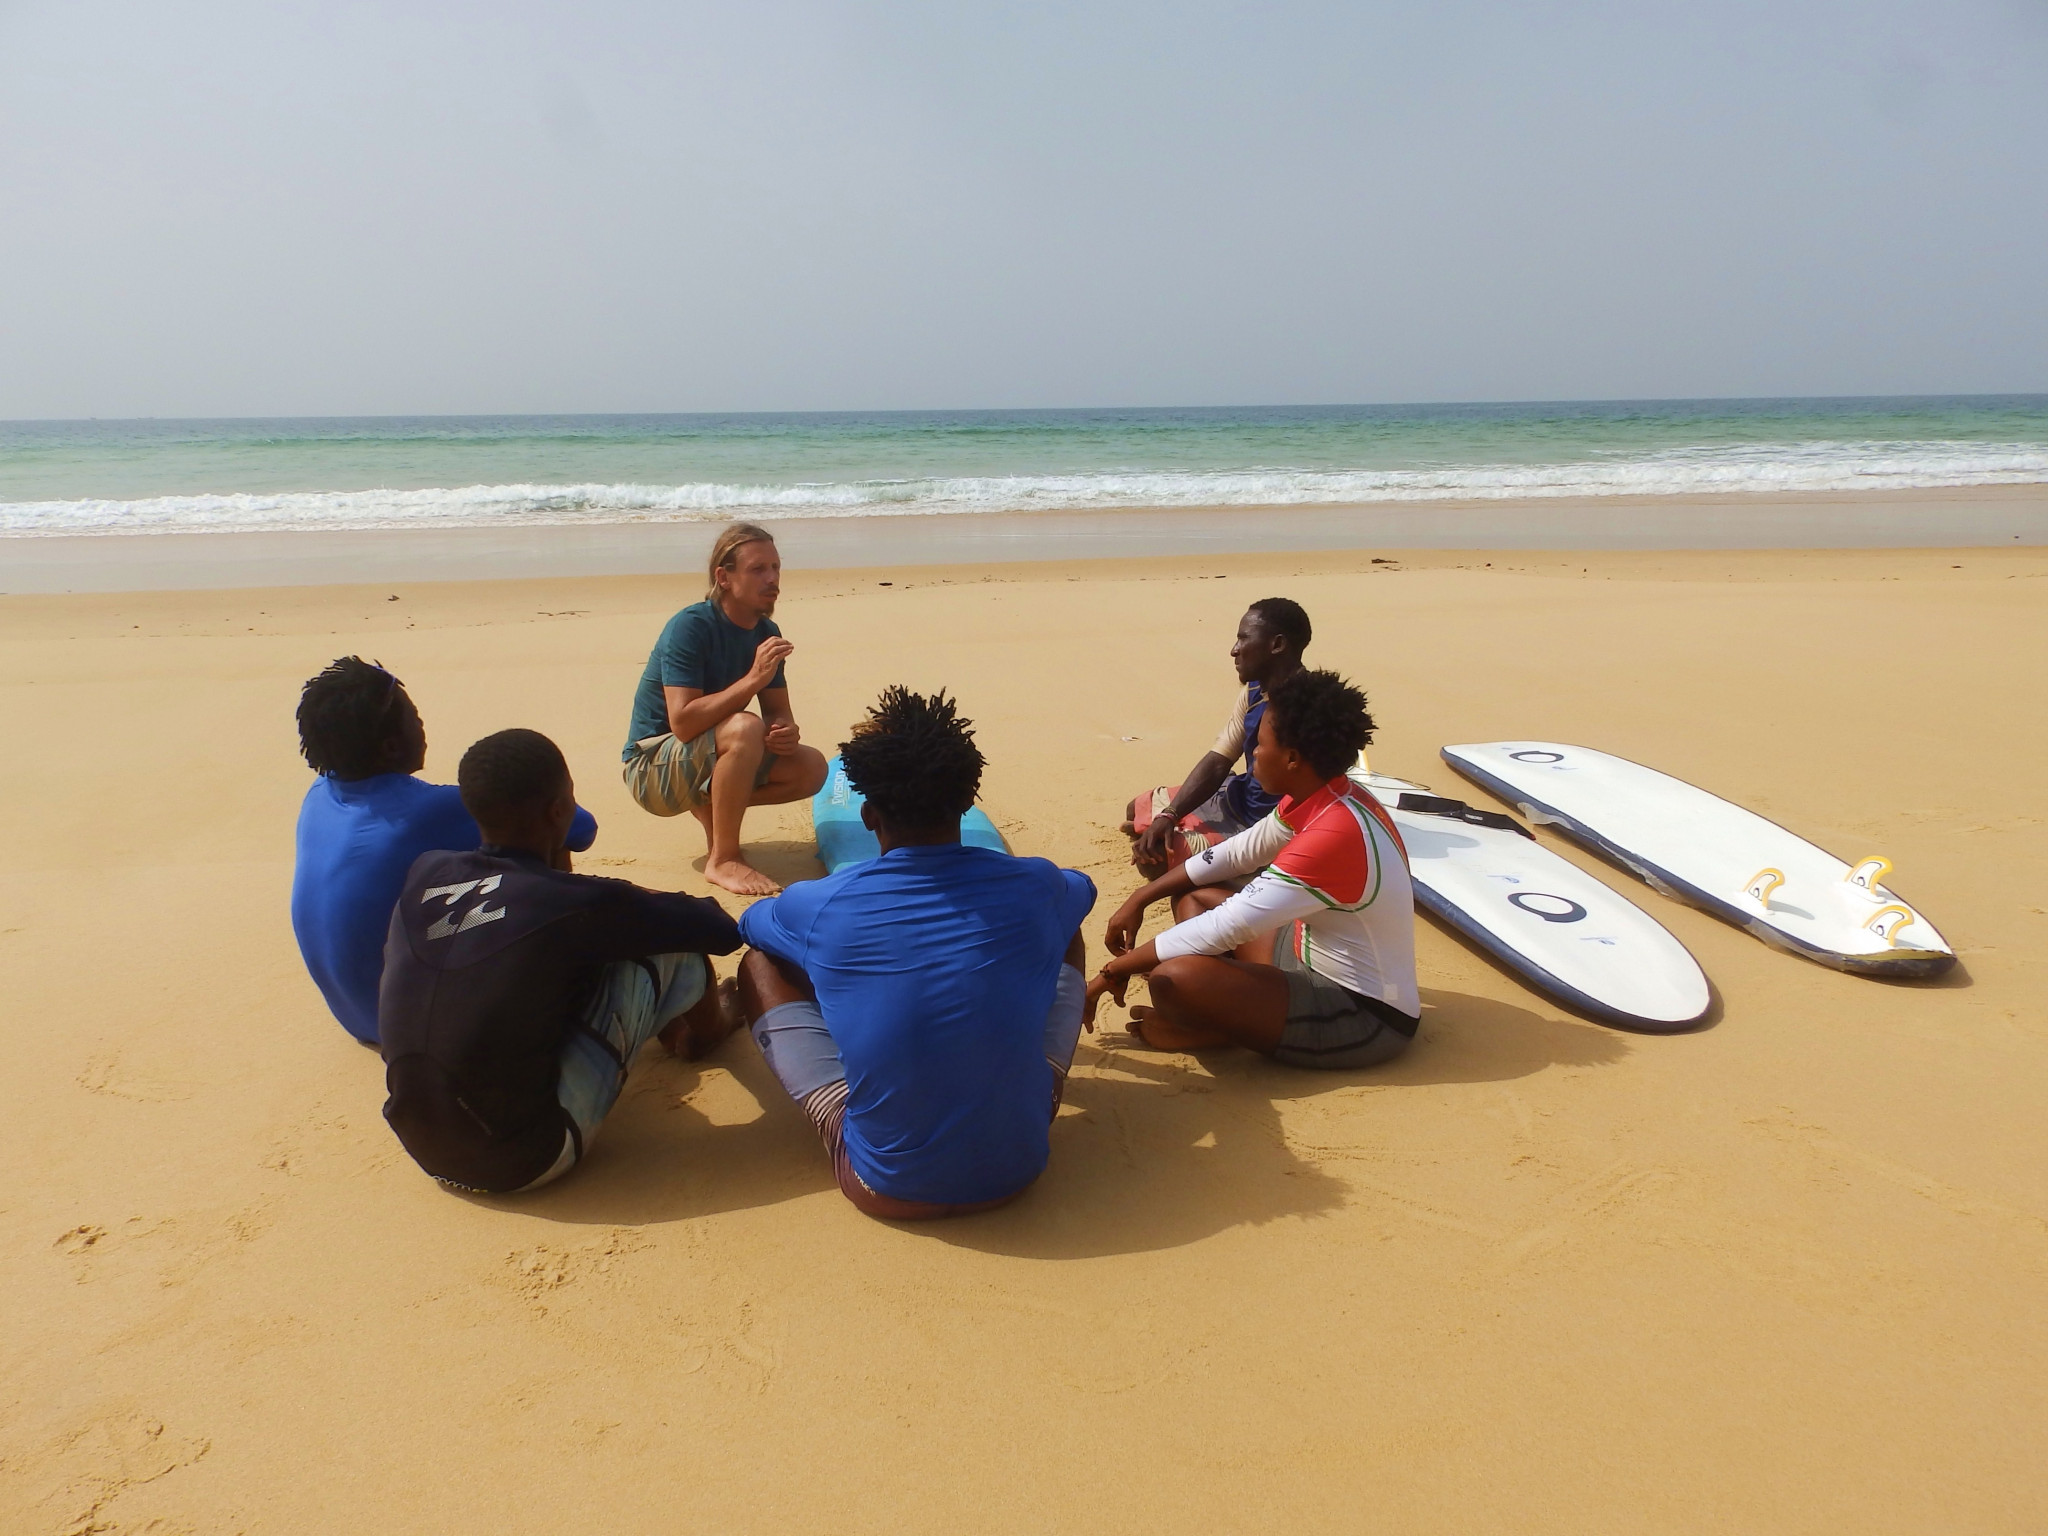 International Surfing Association hail progress of sport in Sierra Leone